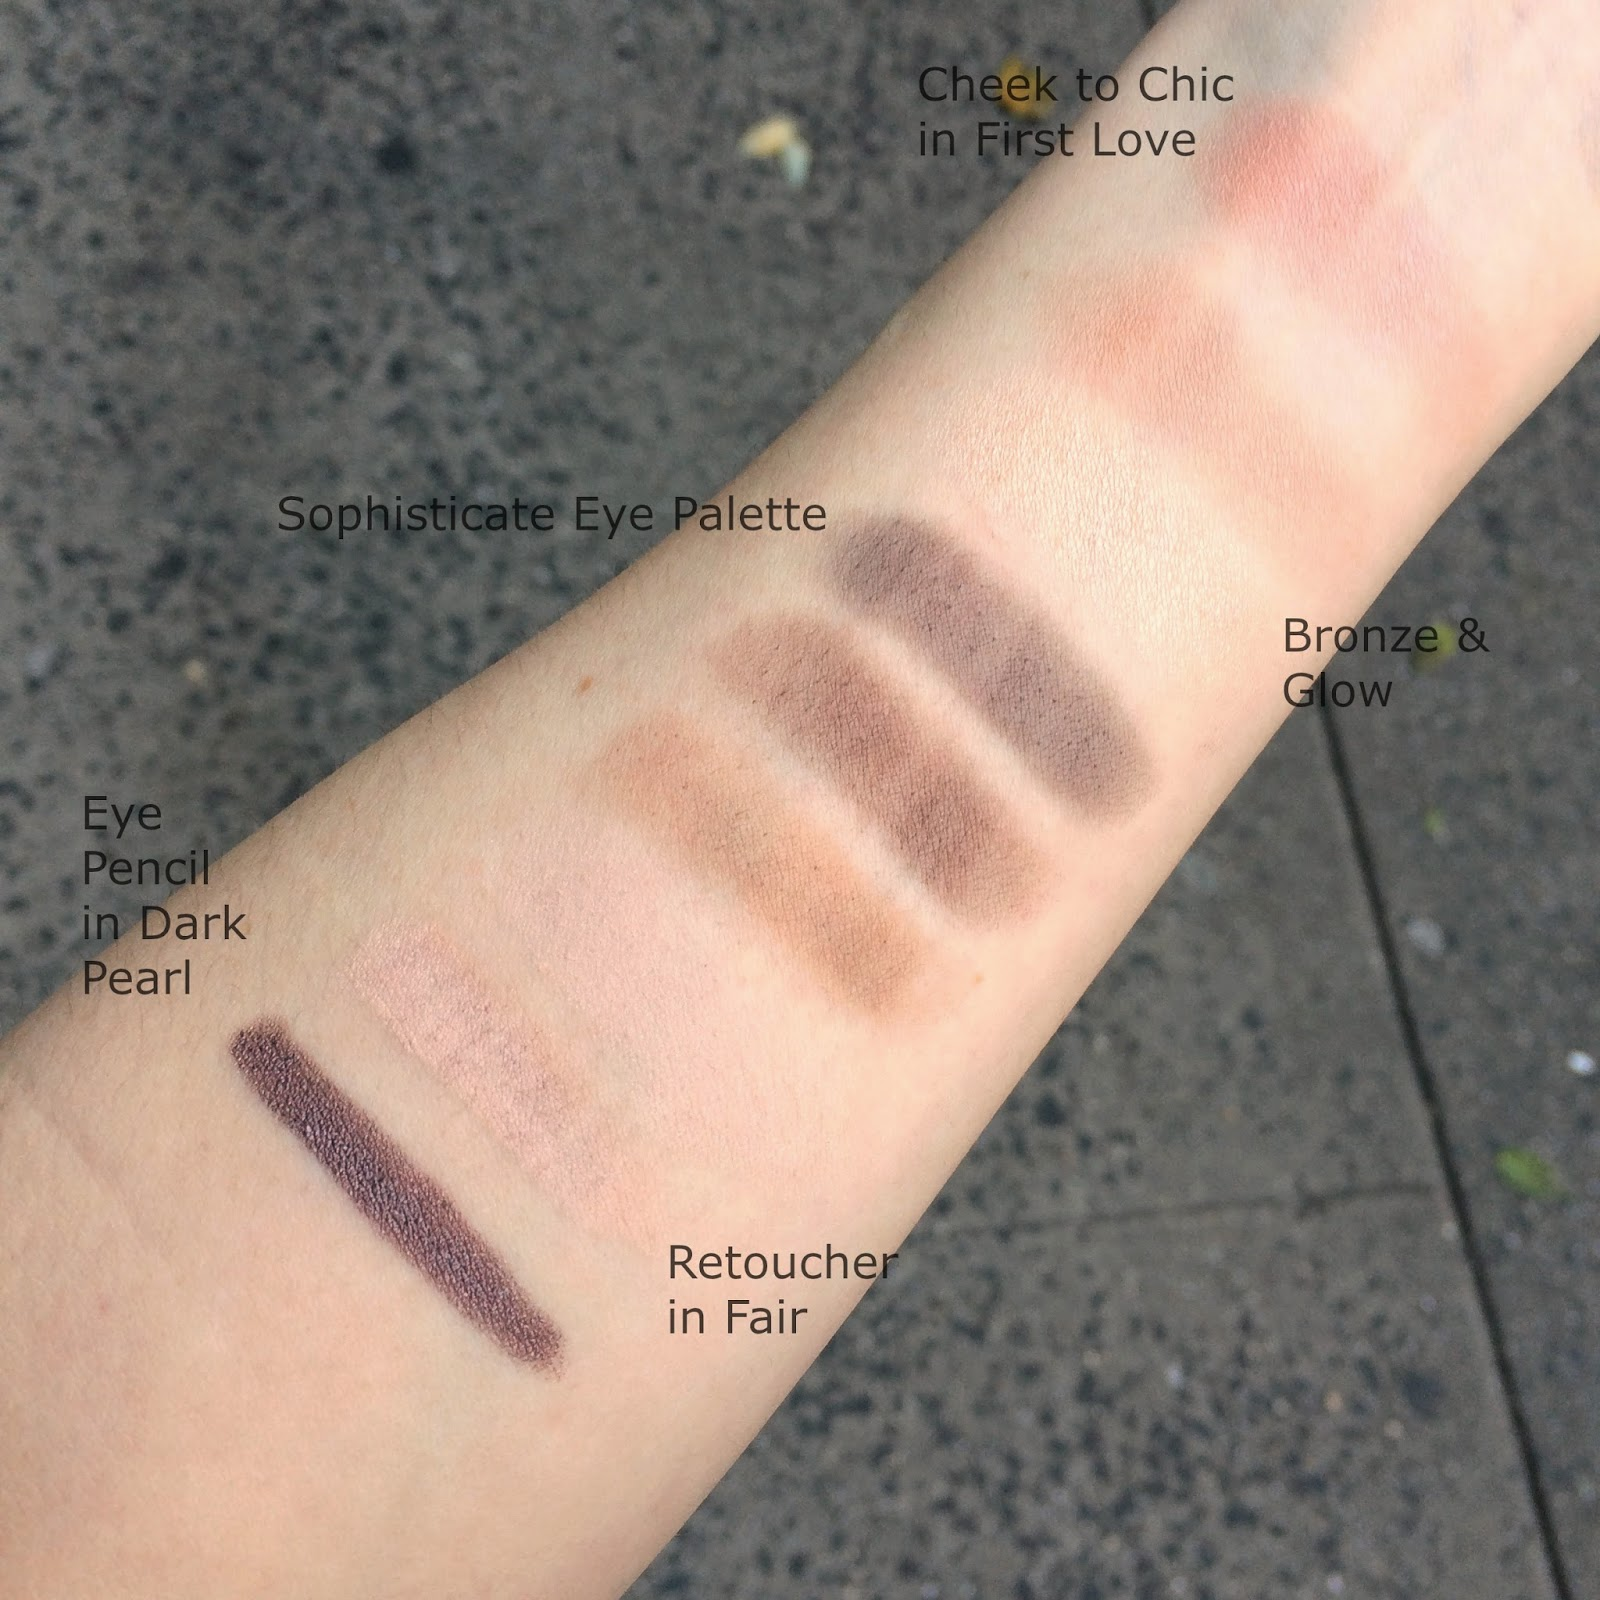 Charlotte Tilbury makeup swatches on fair skin